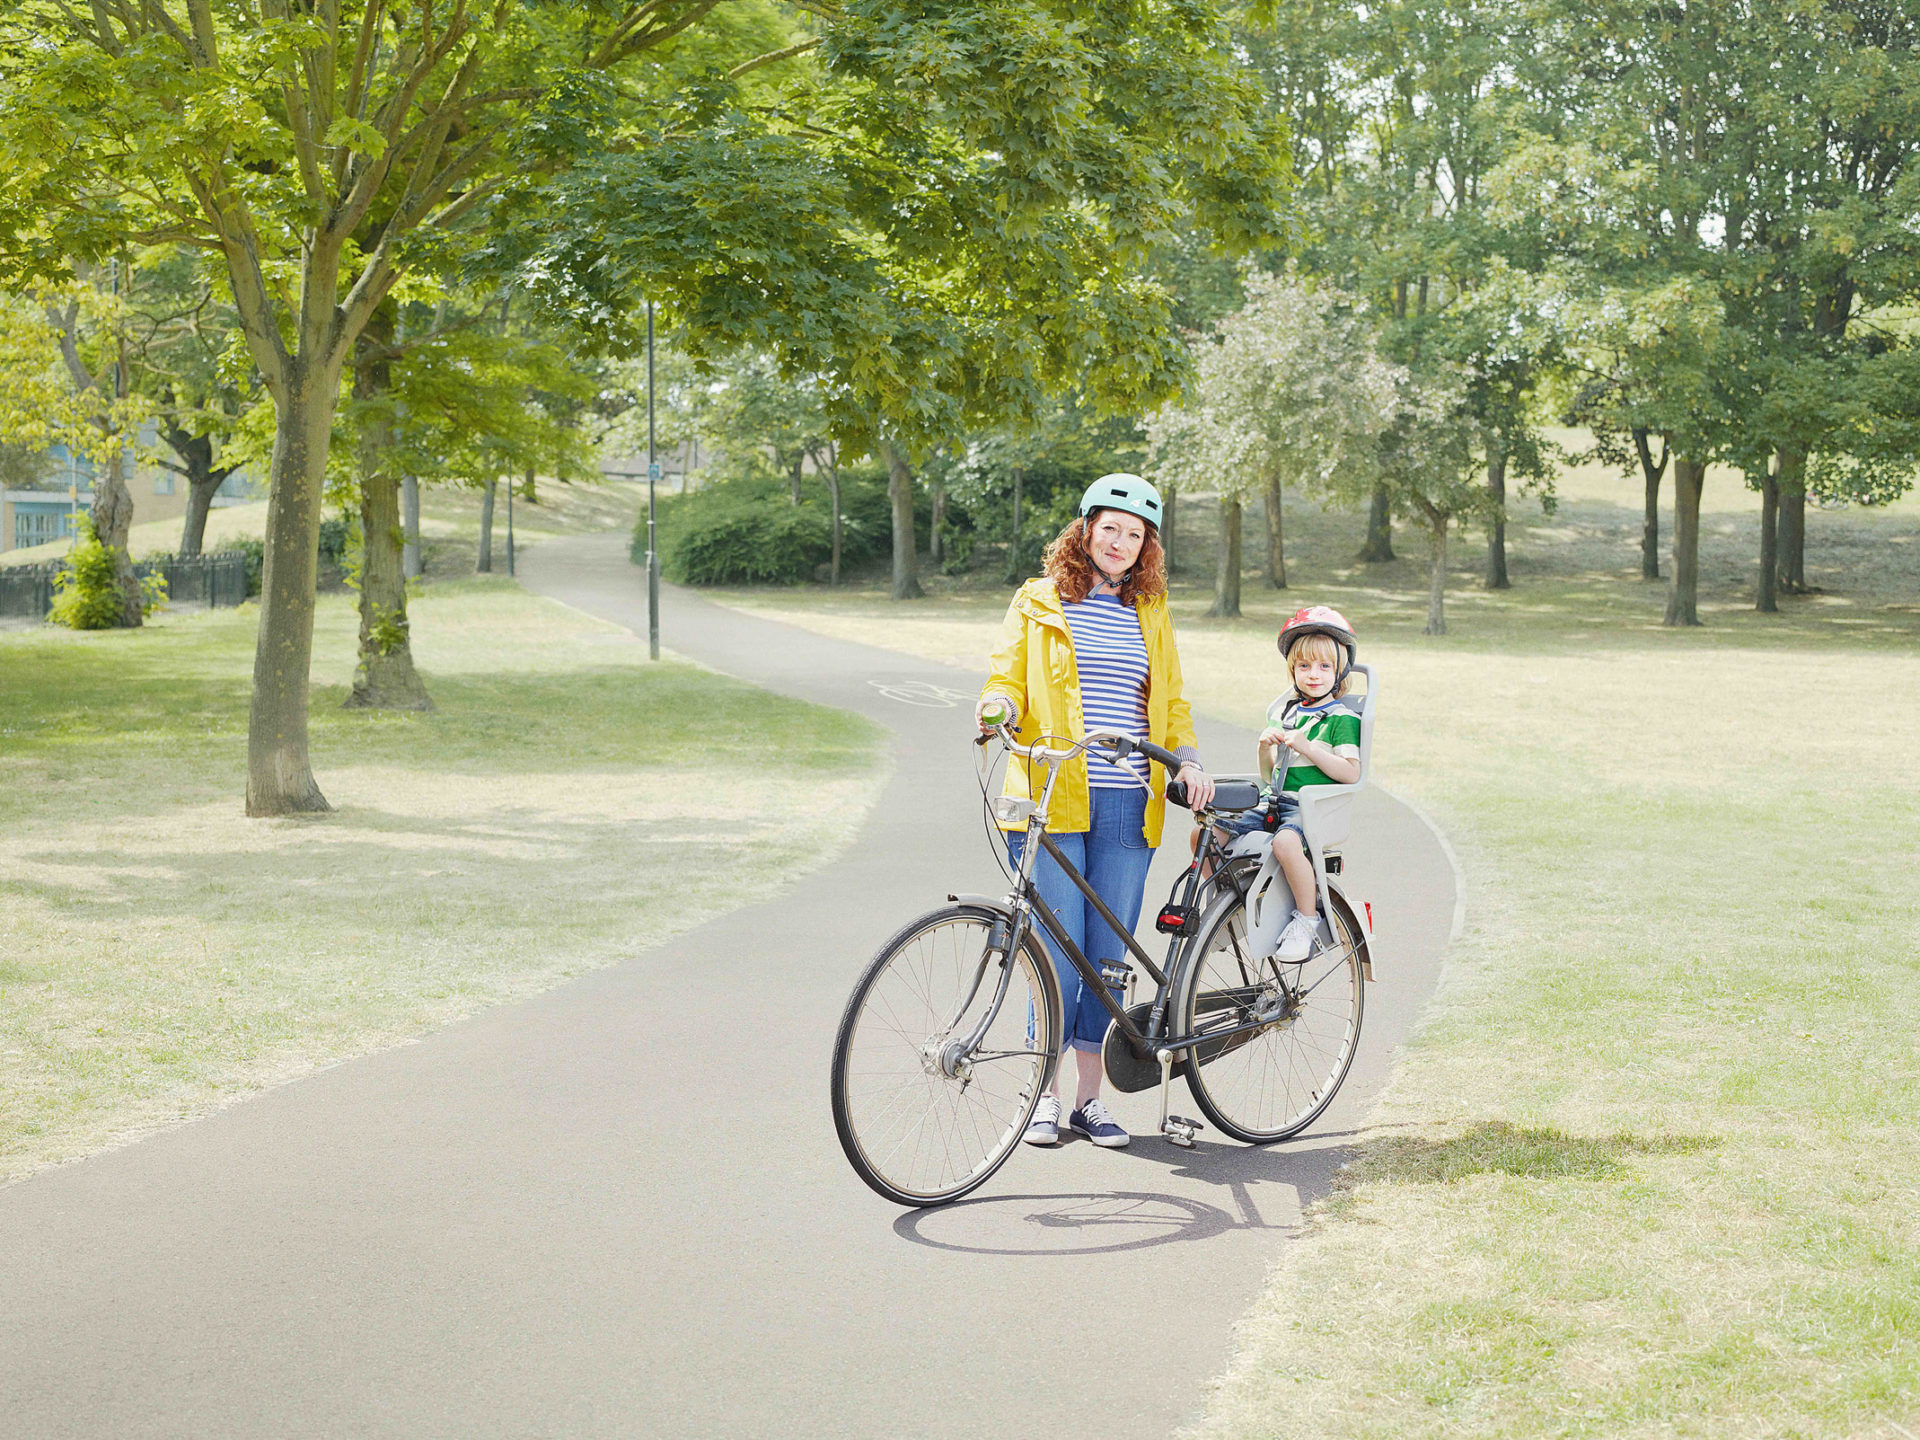 M&C Saatchi – Transport for London – woman and a child on a bike in the park – Shaw & Shaw Photography campaign – Shaw and Shaw advertising photographers